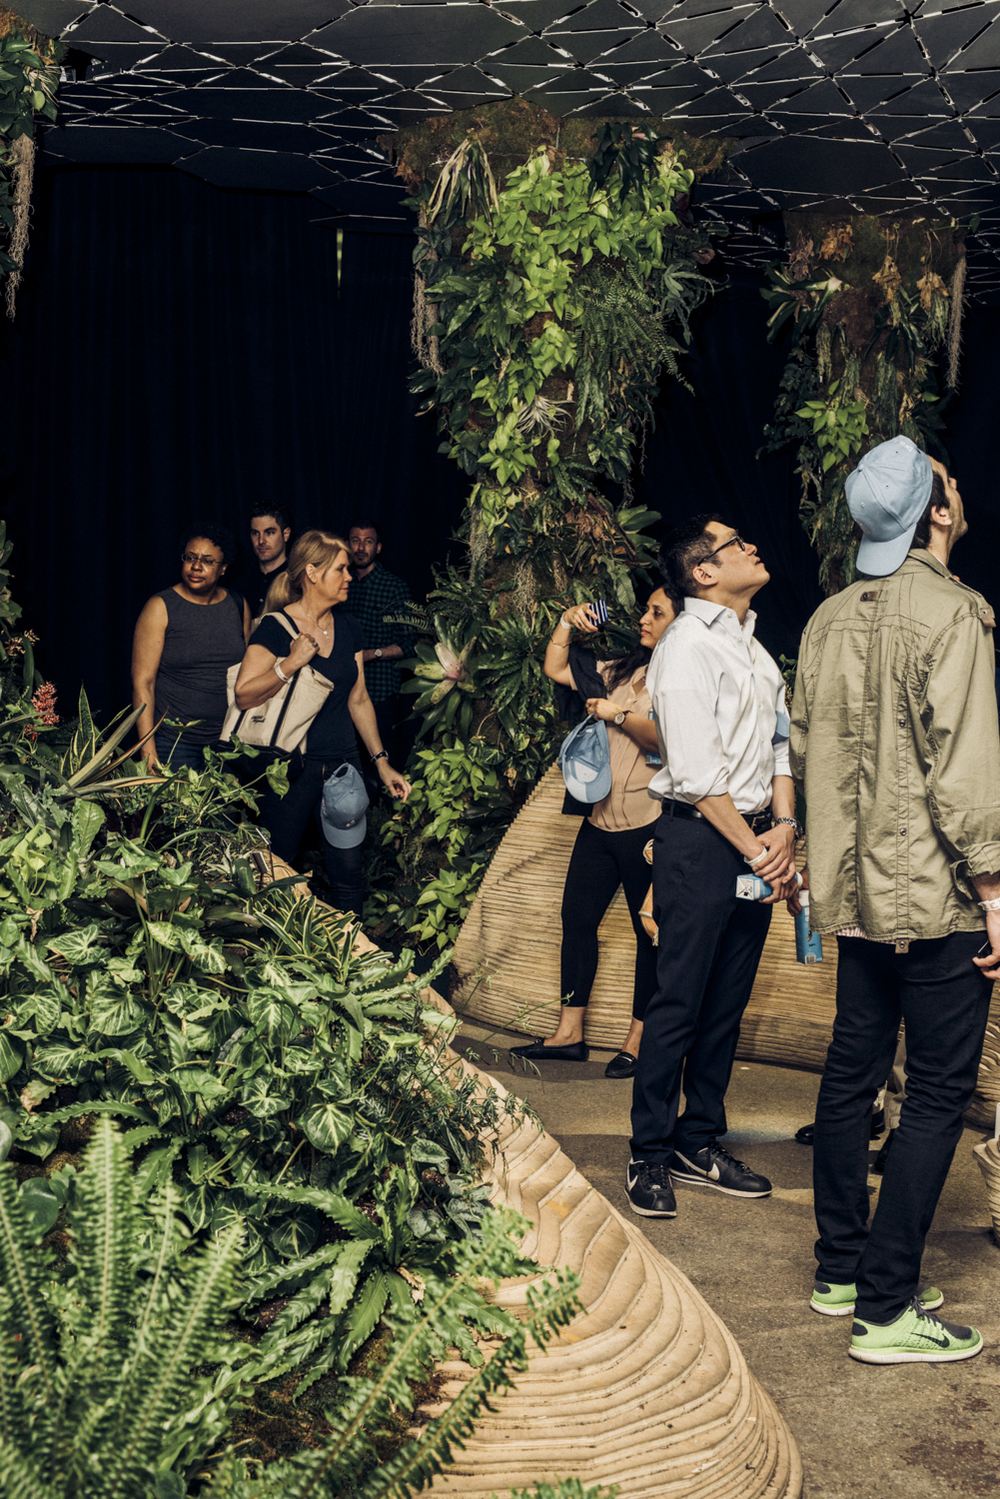 Earth Day New York 2016 at the Lowline Lab.